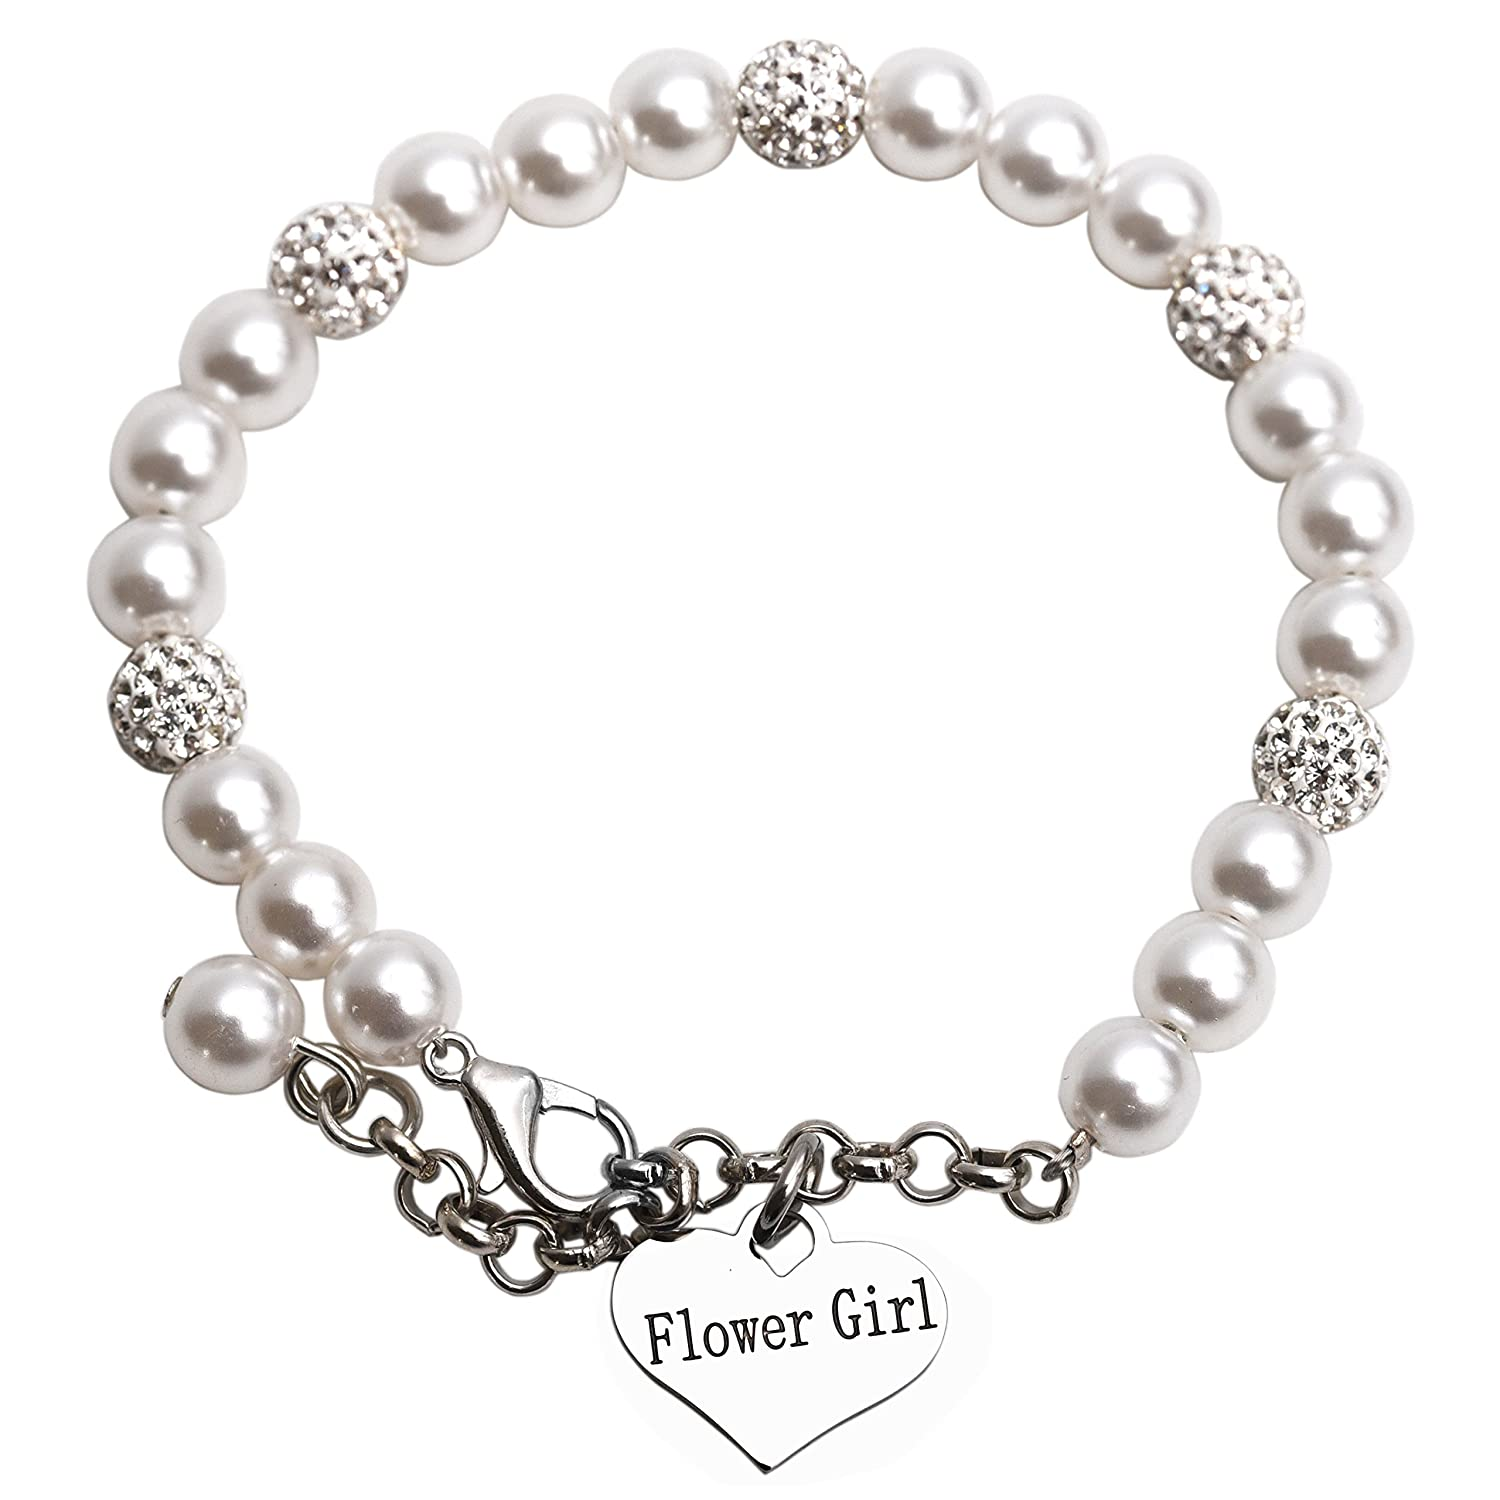 bracelets flowergirl bracelet pearl swarovski classic flower girl bridal bridesmaids loretta collections wedding jewellery jules